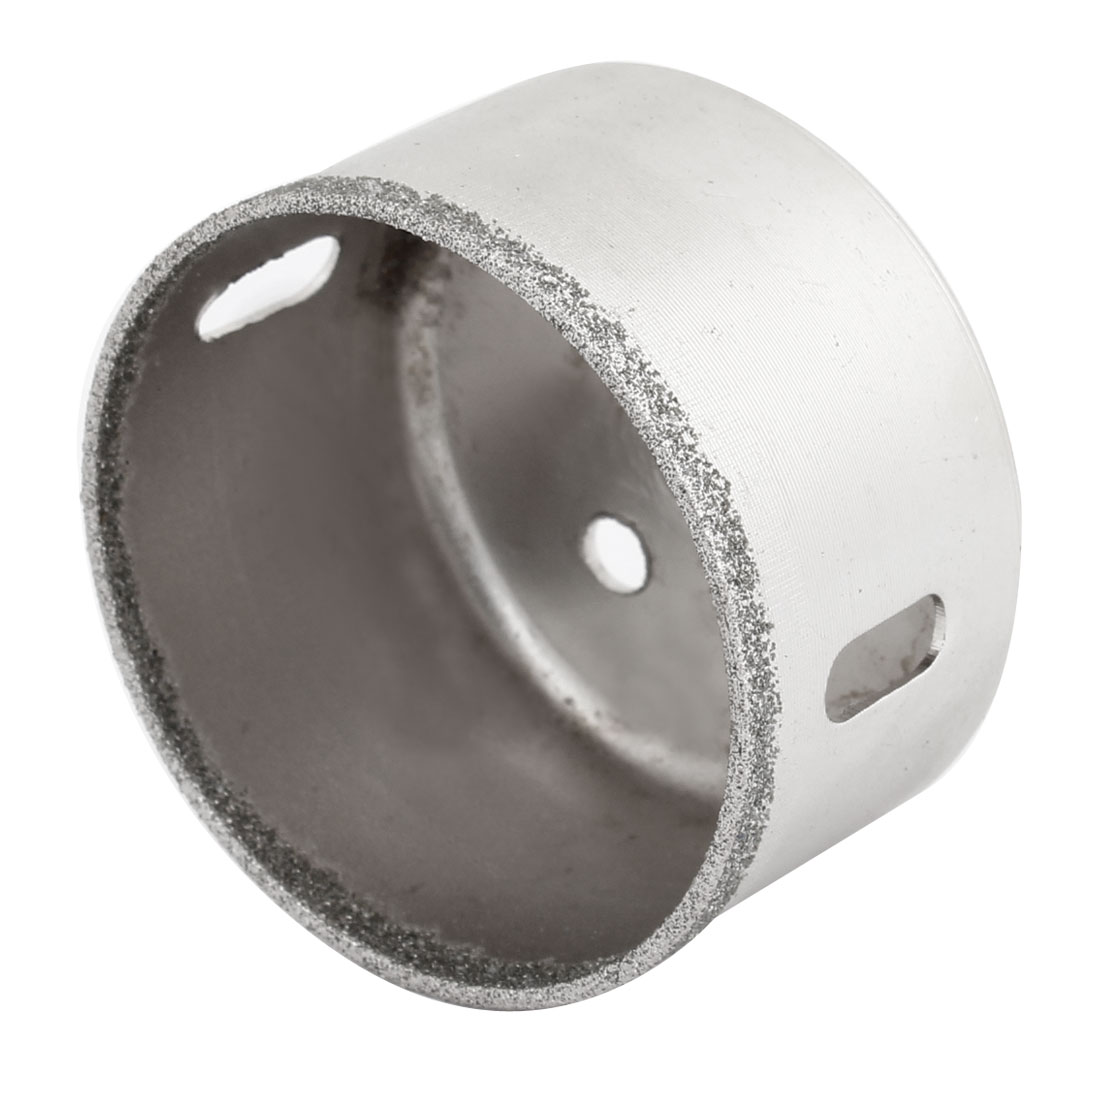 Straight Shaft 50mm Cutting Diameter Tile Glass Hole Saw Cutter Silver Tone - image 1 of 1